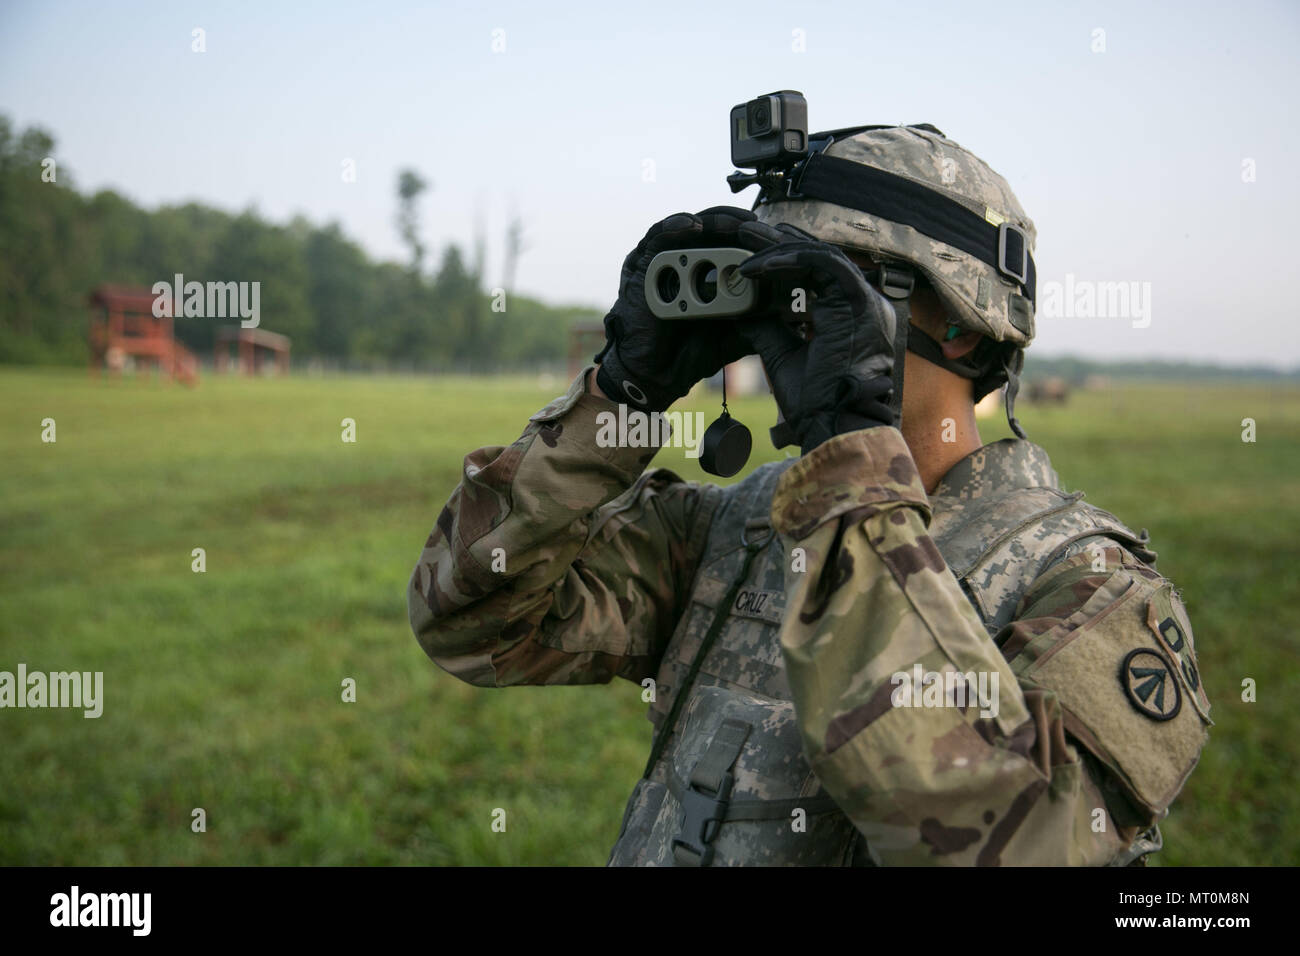 Army soldier finder